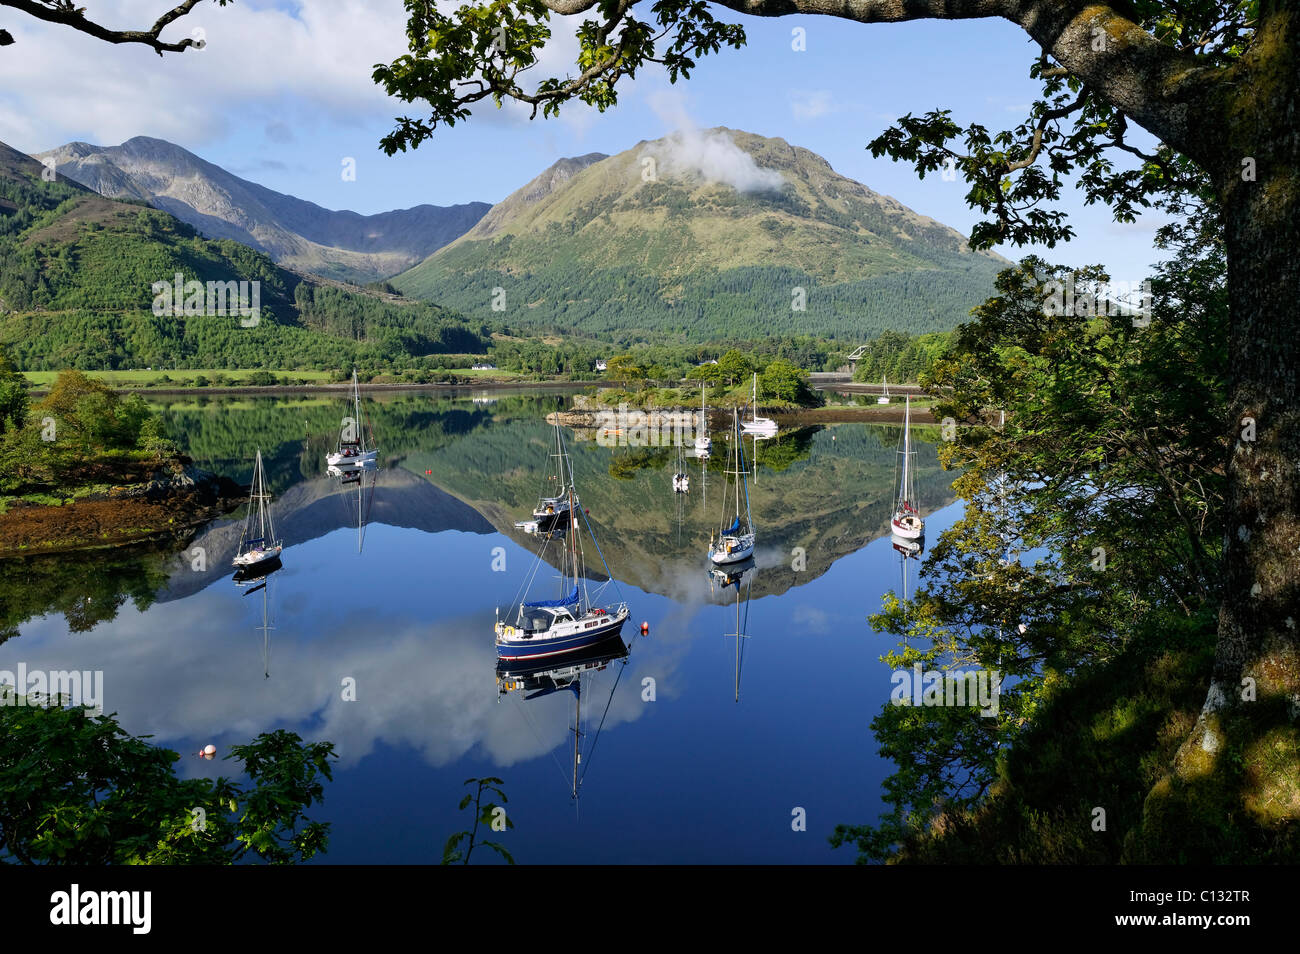 Bishops Bay, Loch Leven, near North Ballachulish, Lochaber, Highland, Scotland. View of yachts at anchor. - Stock Image